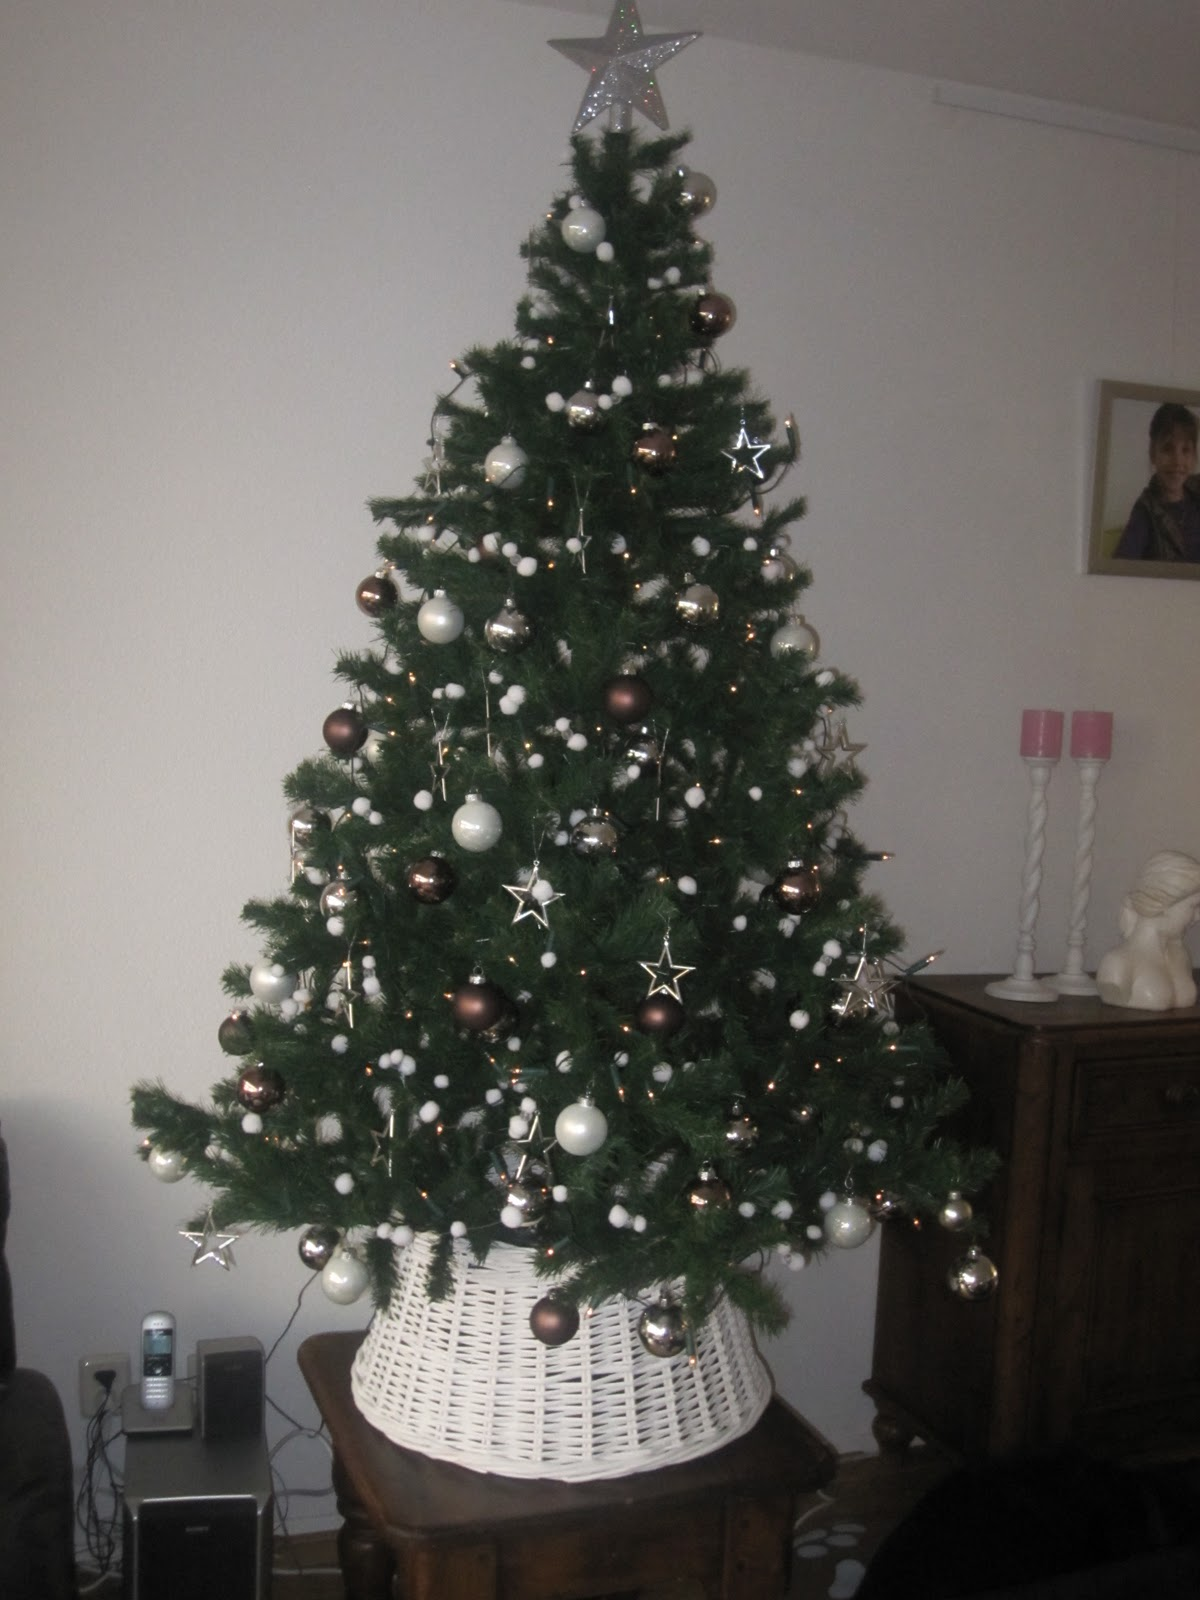 Affordable kerstboom hout action with kerstboom hout action for Mini kerstboom action